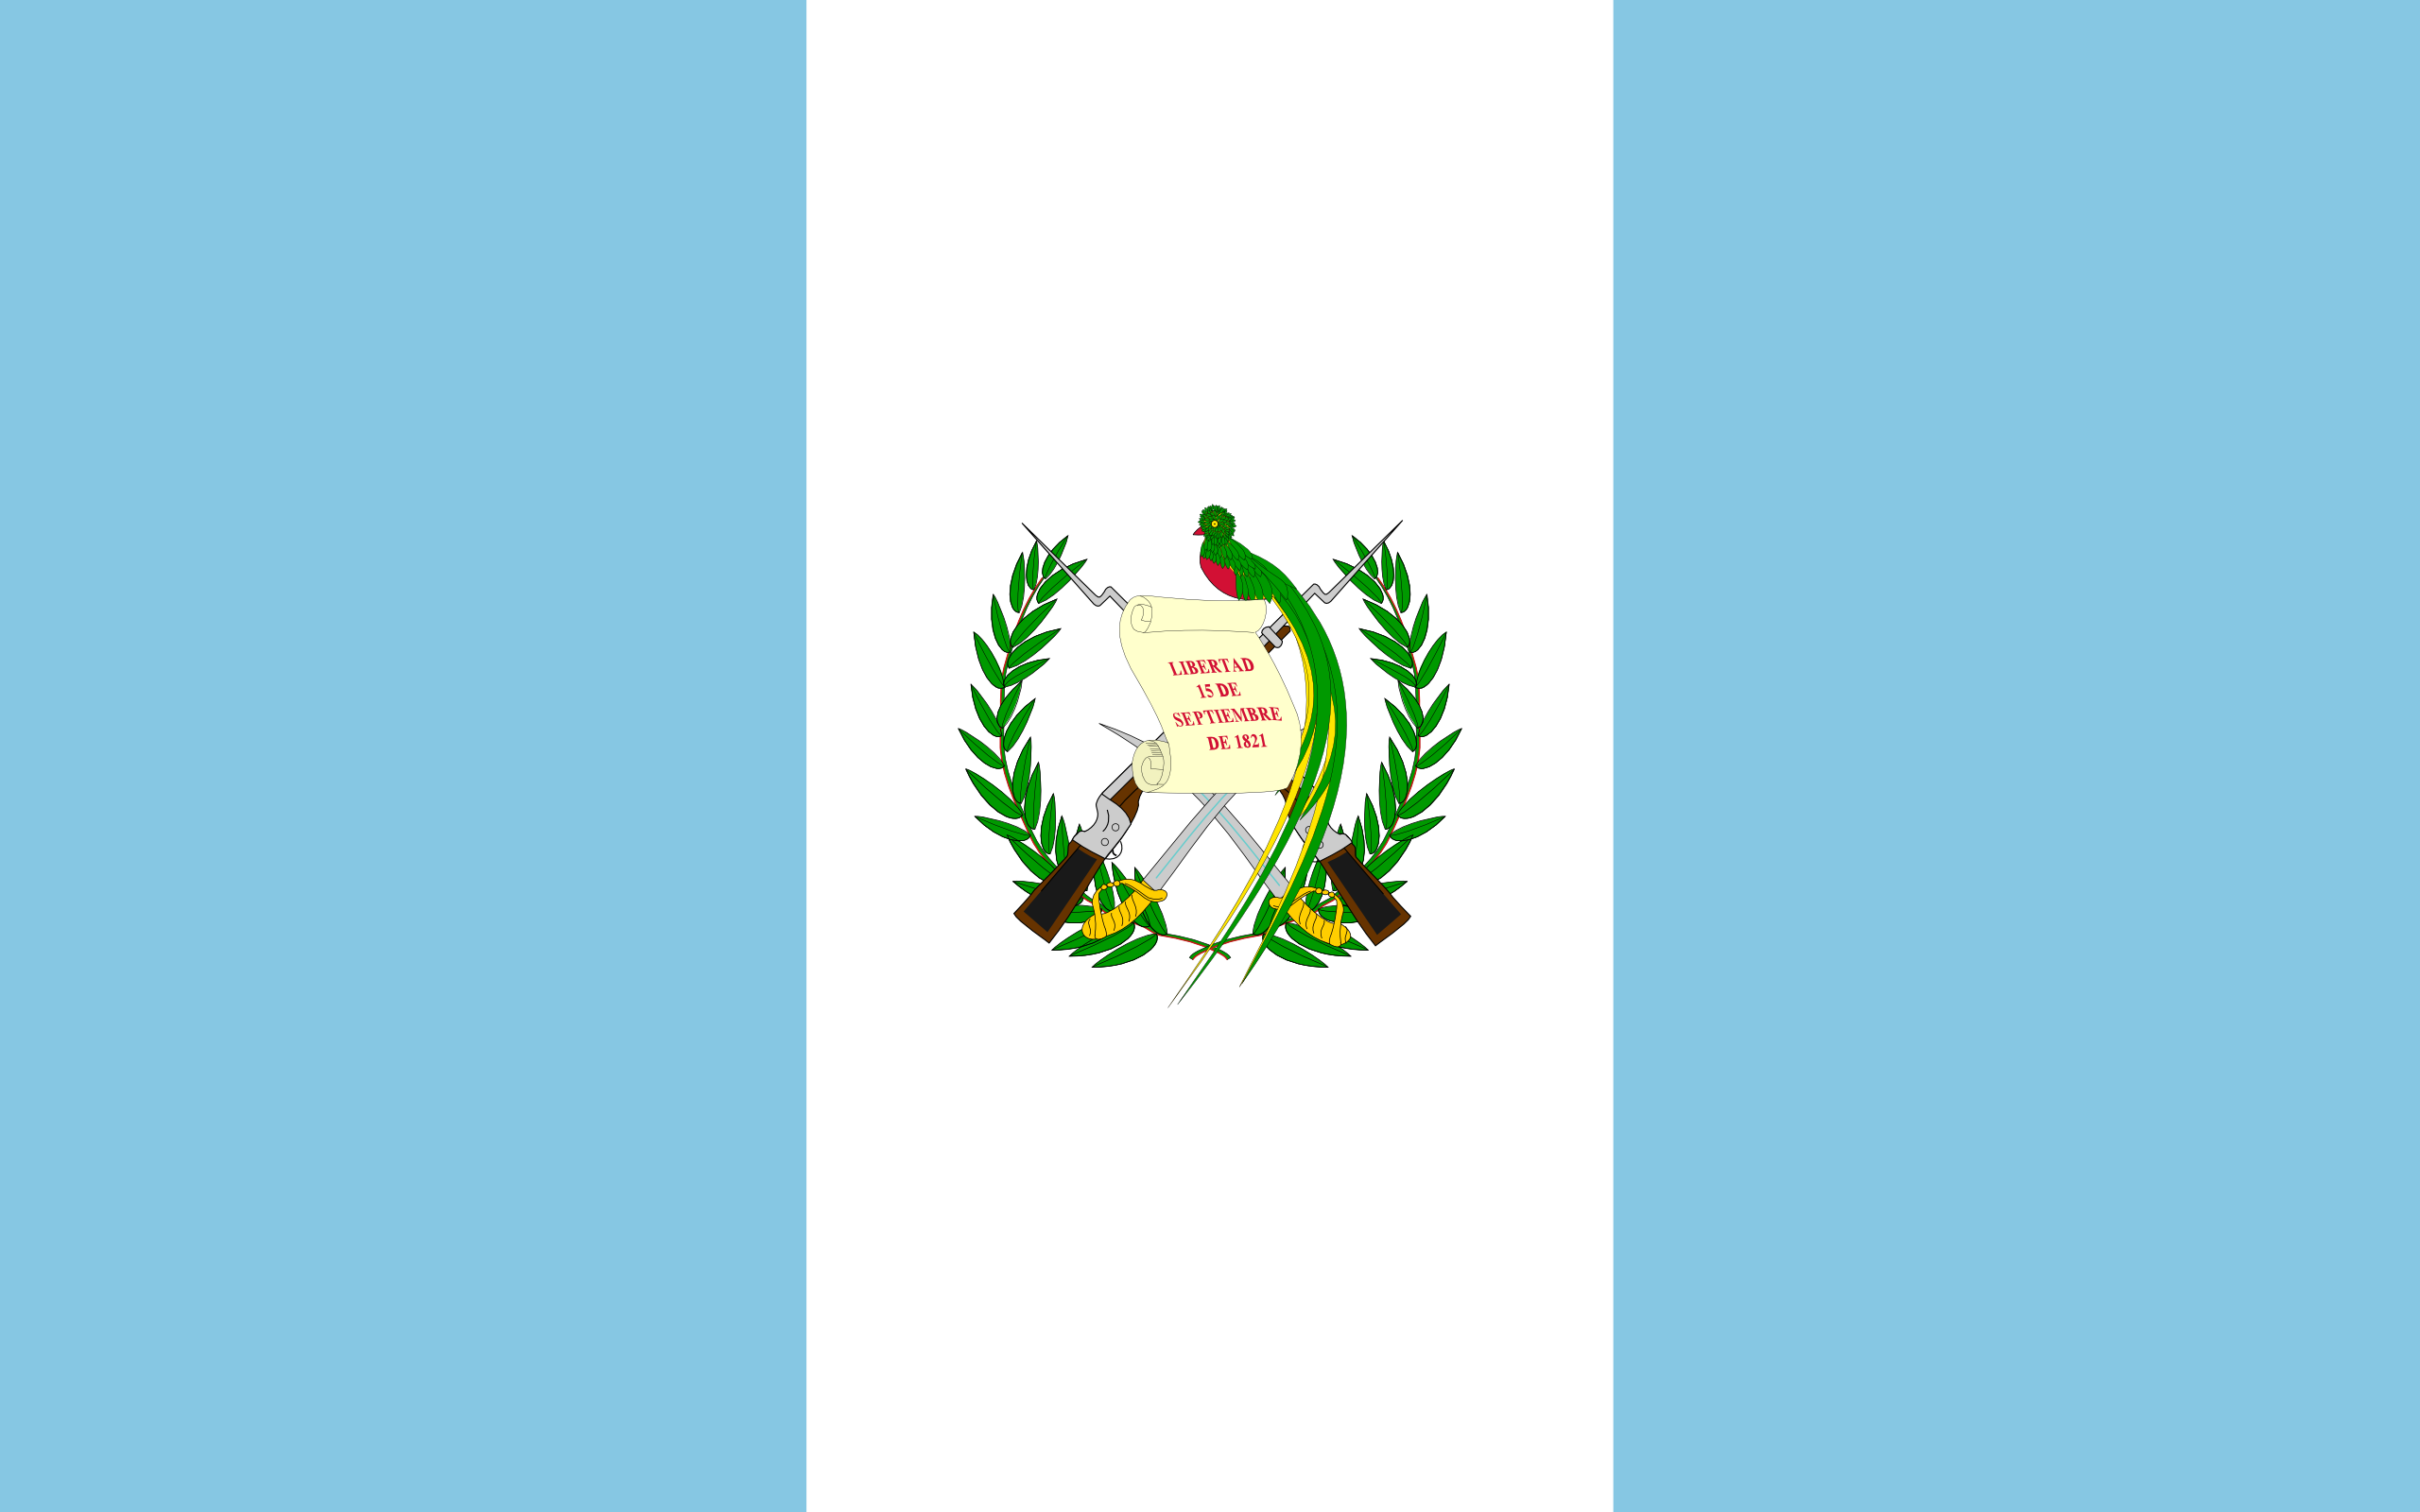 guatemala, país, emblema, insignia, σύμβολο - Wallpapers HD - Professor-falken.com